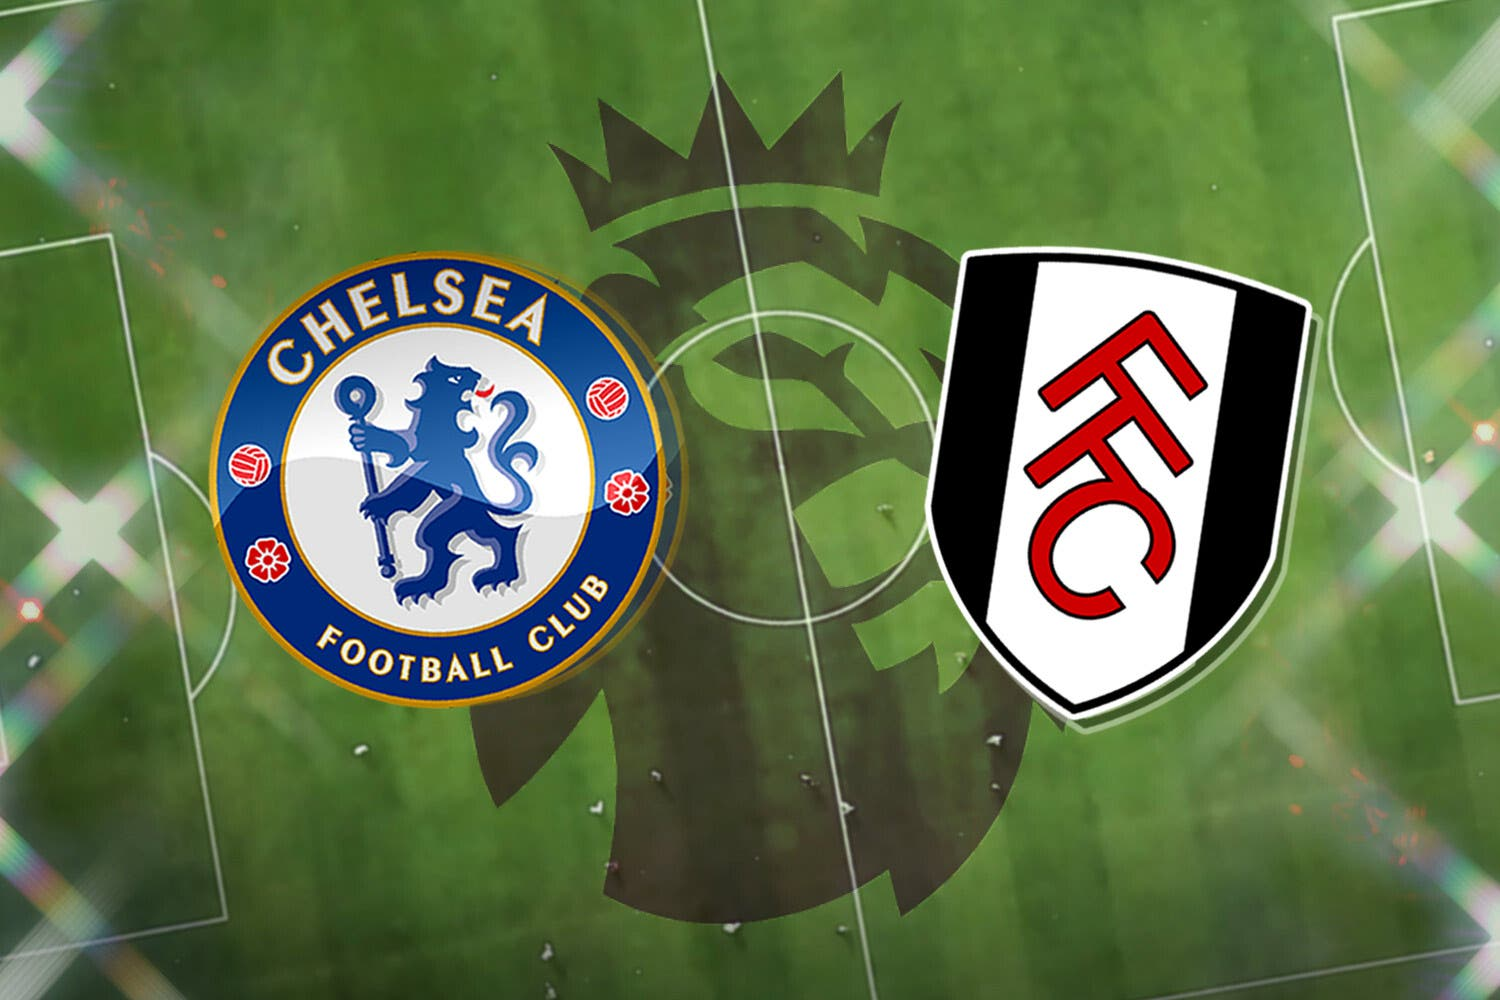 Chelsea FC vs Fulham: Prediction, TV channel, h2h results, team news, lineups, live stream, odds today